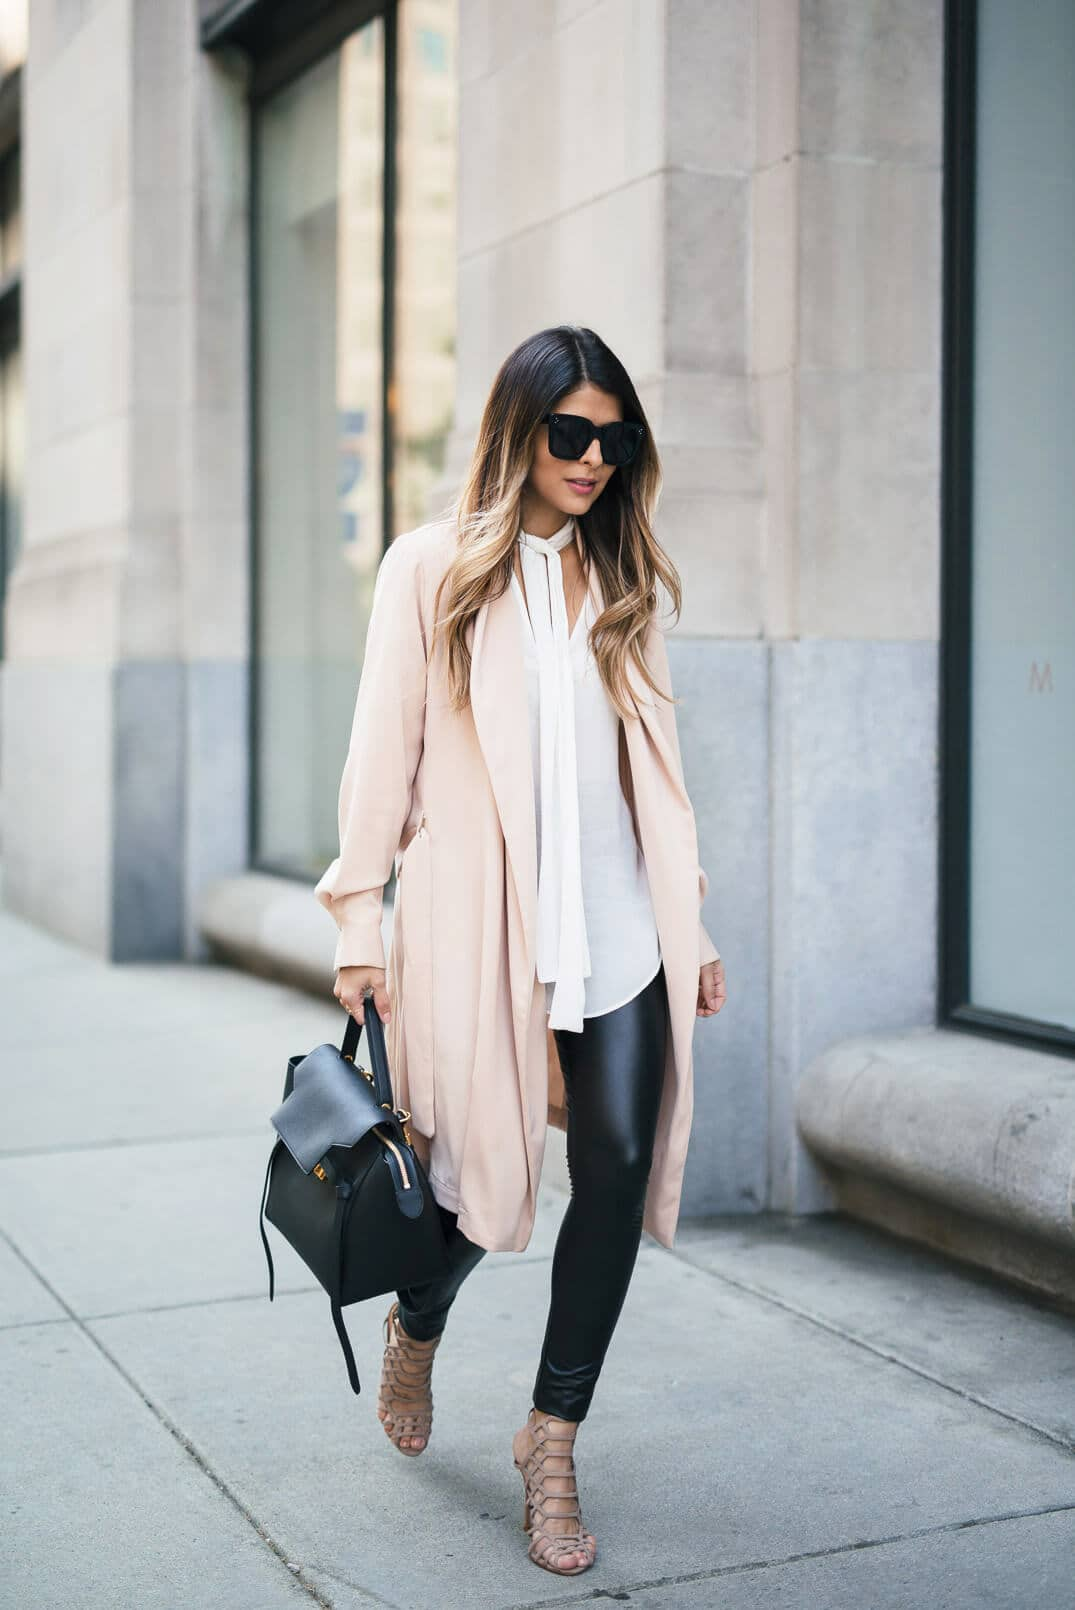 27 Spring Work Outfit Ideas That Will Brighten Your Day